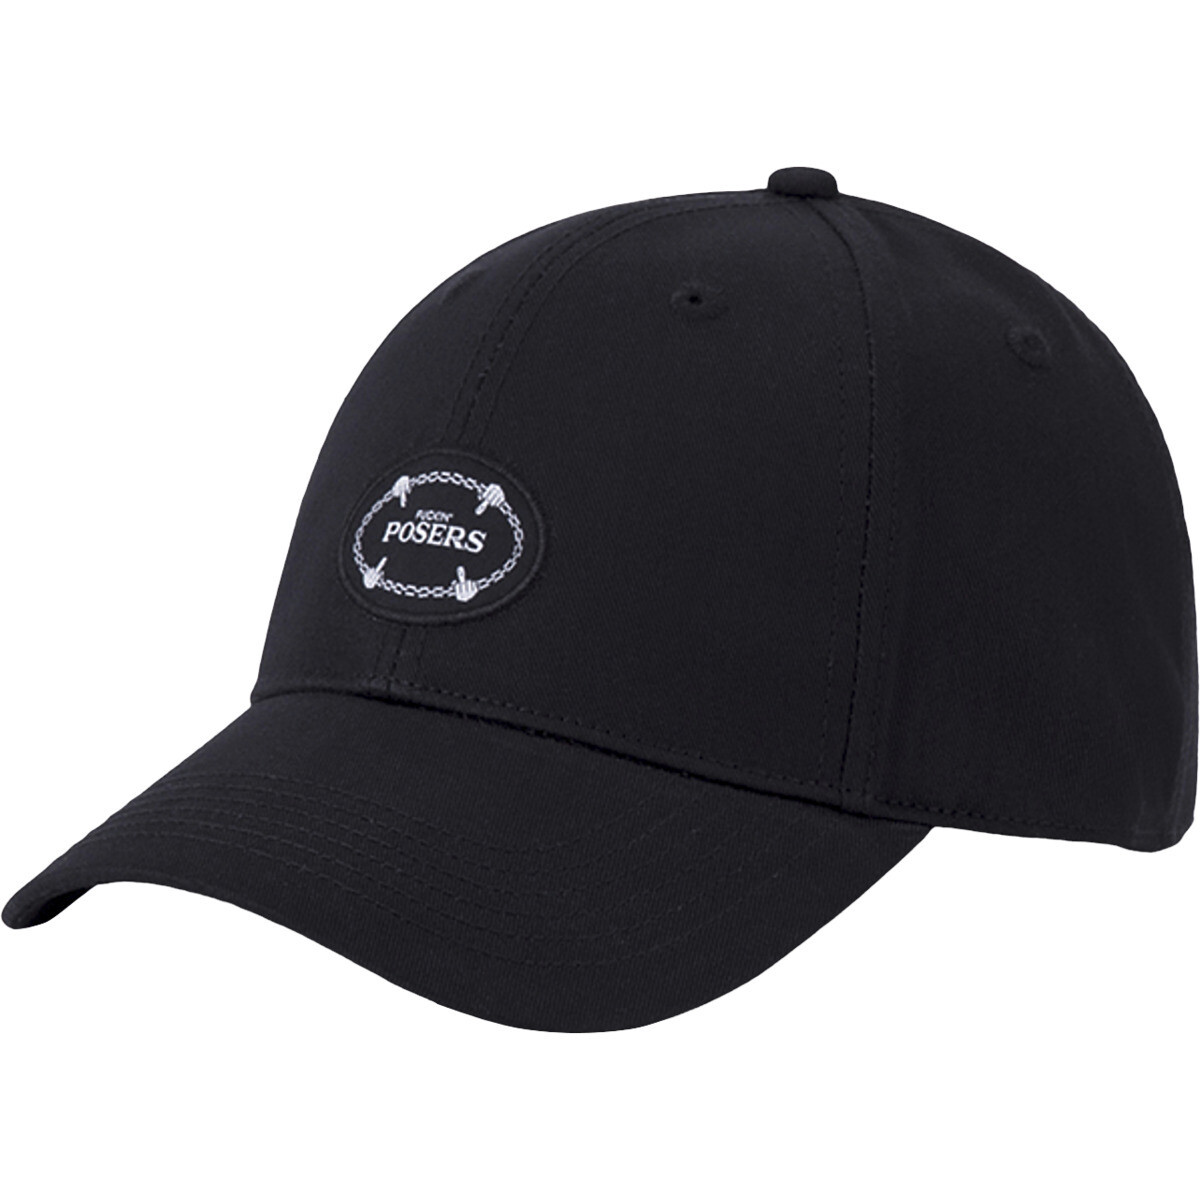 C&S WL Posers Curved Cap